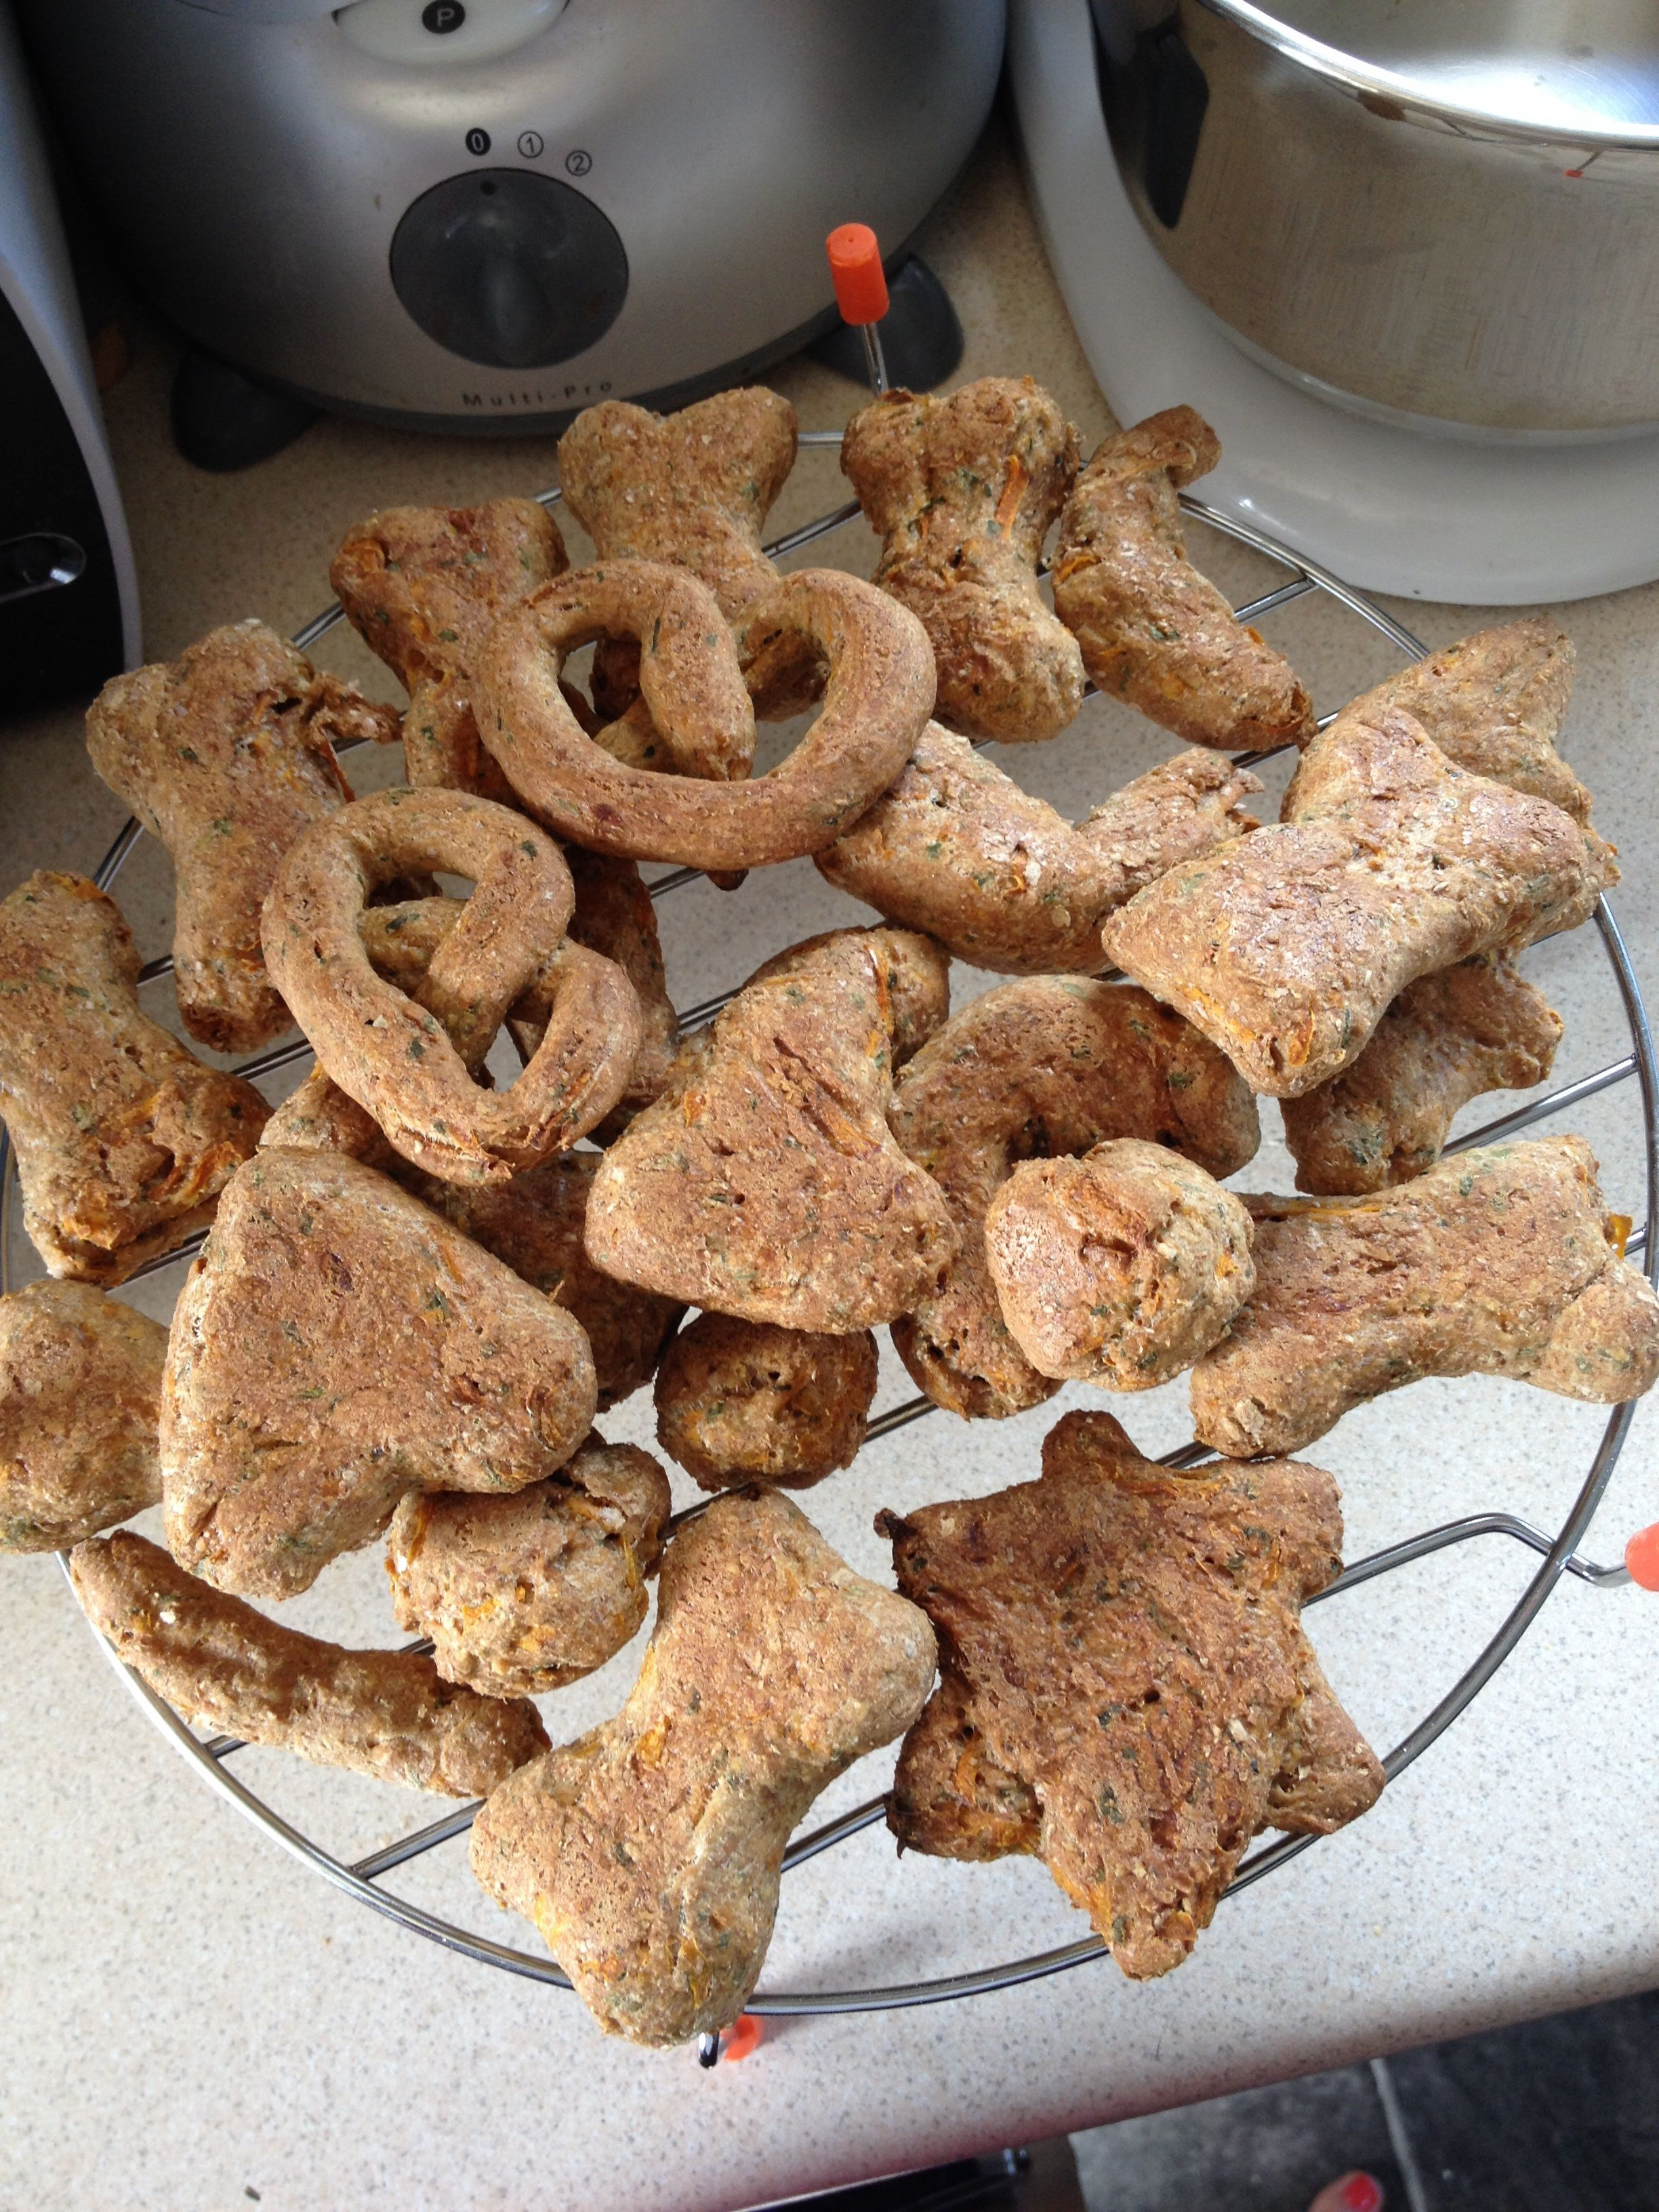 Homemade Healthy Dog Treats with Carrot and Parsley